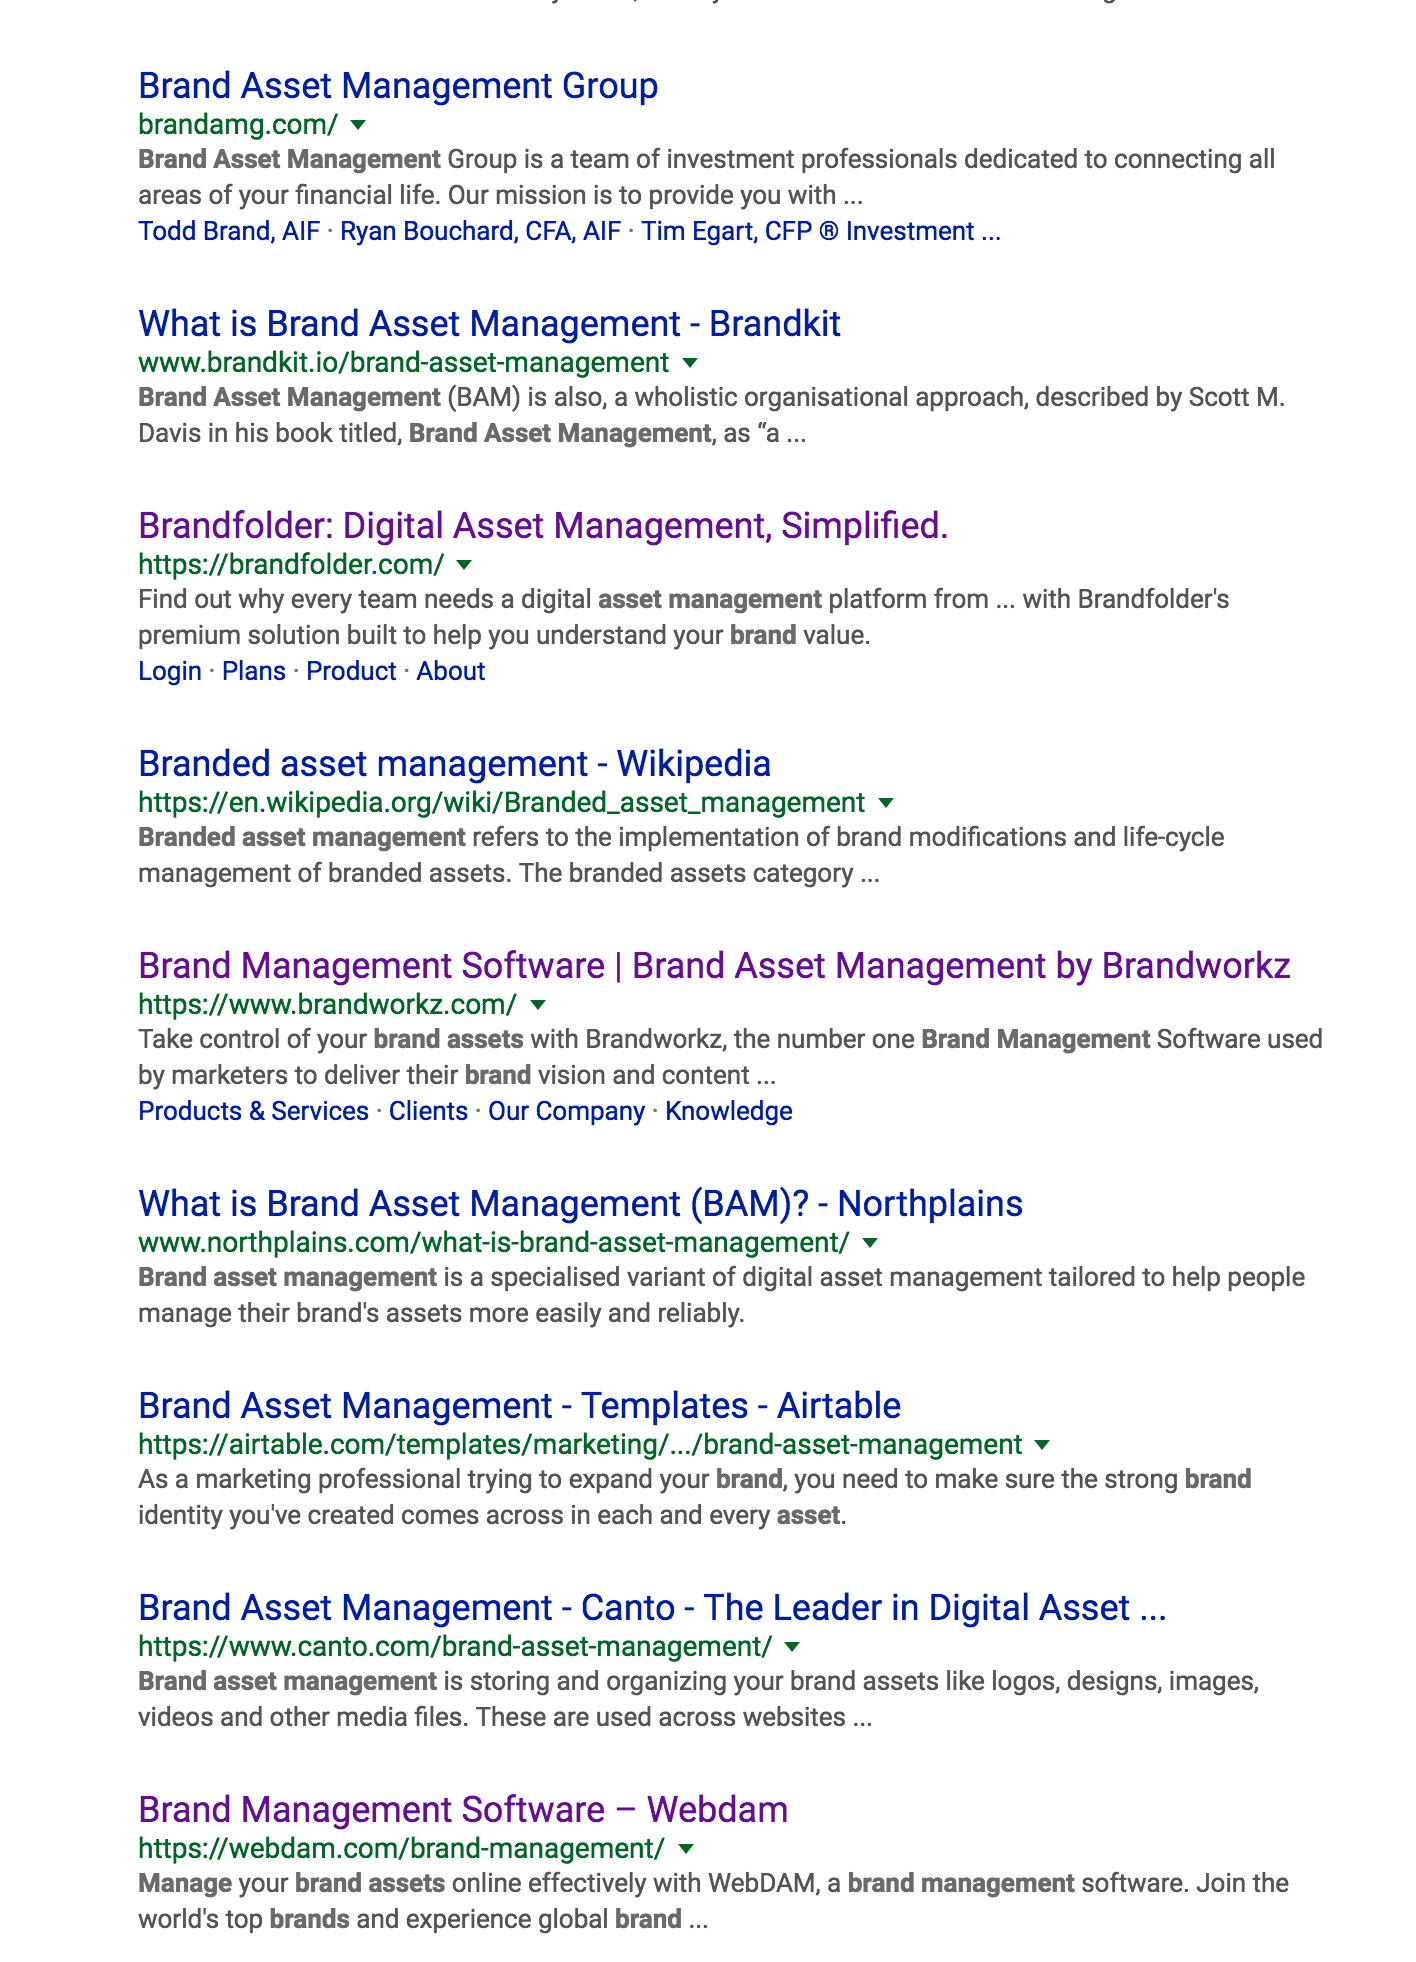 example of title tags in the SERPs